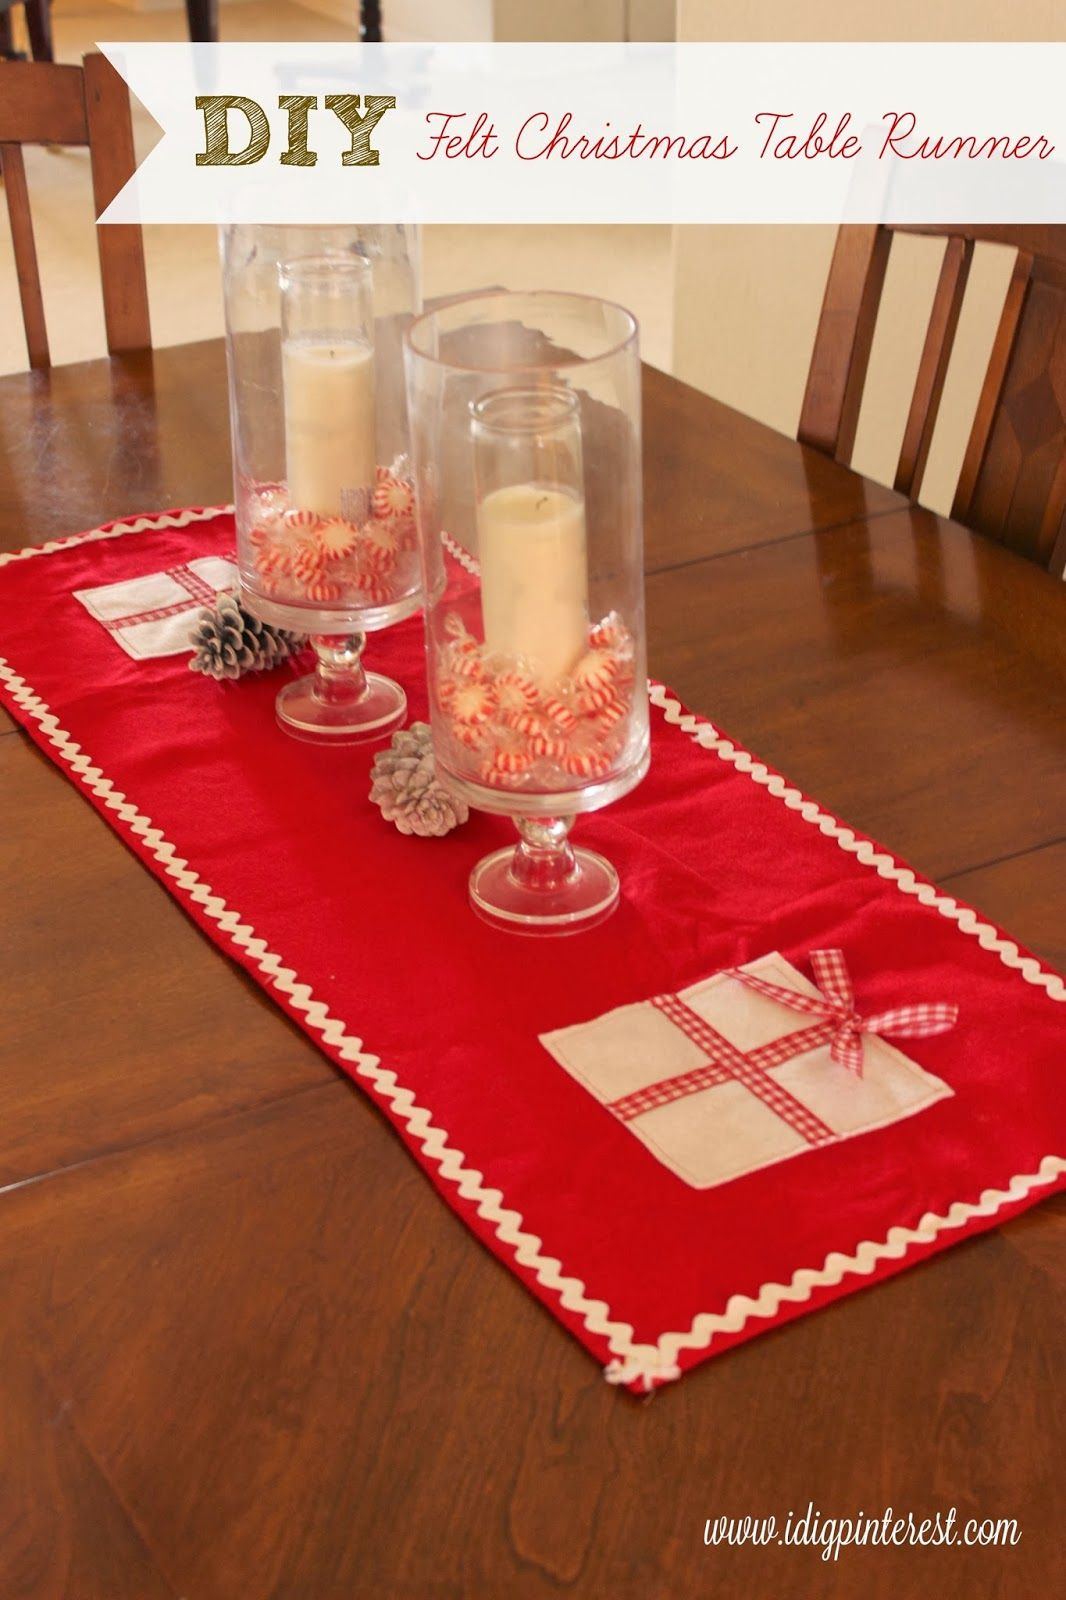 Christmas Table Runner Diy.Diy Felt Christmas Table Runner Christmas Felt Diy Felt